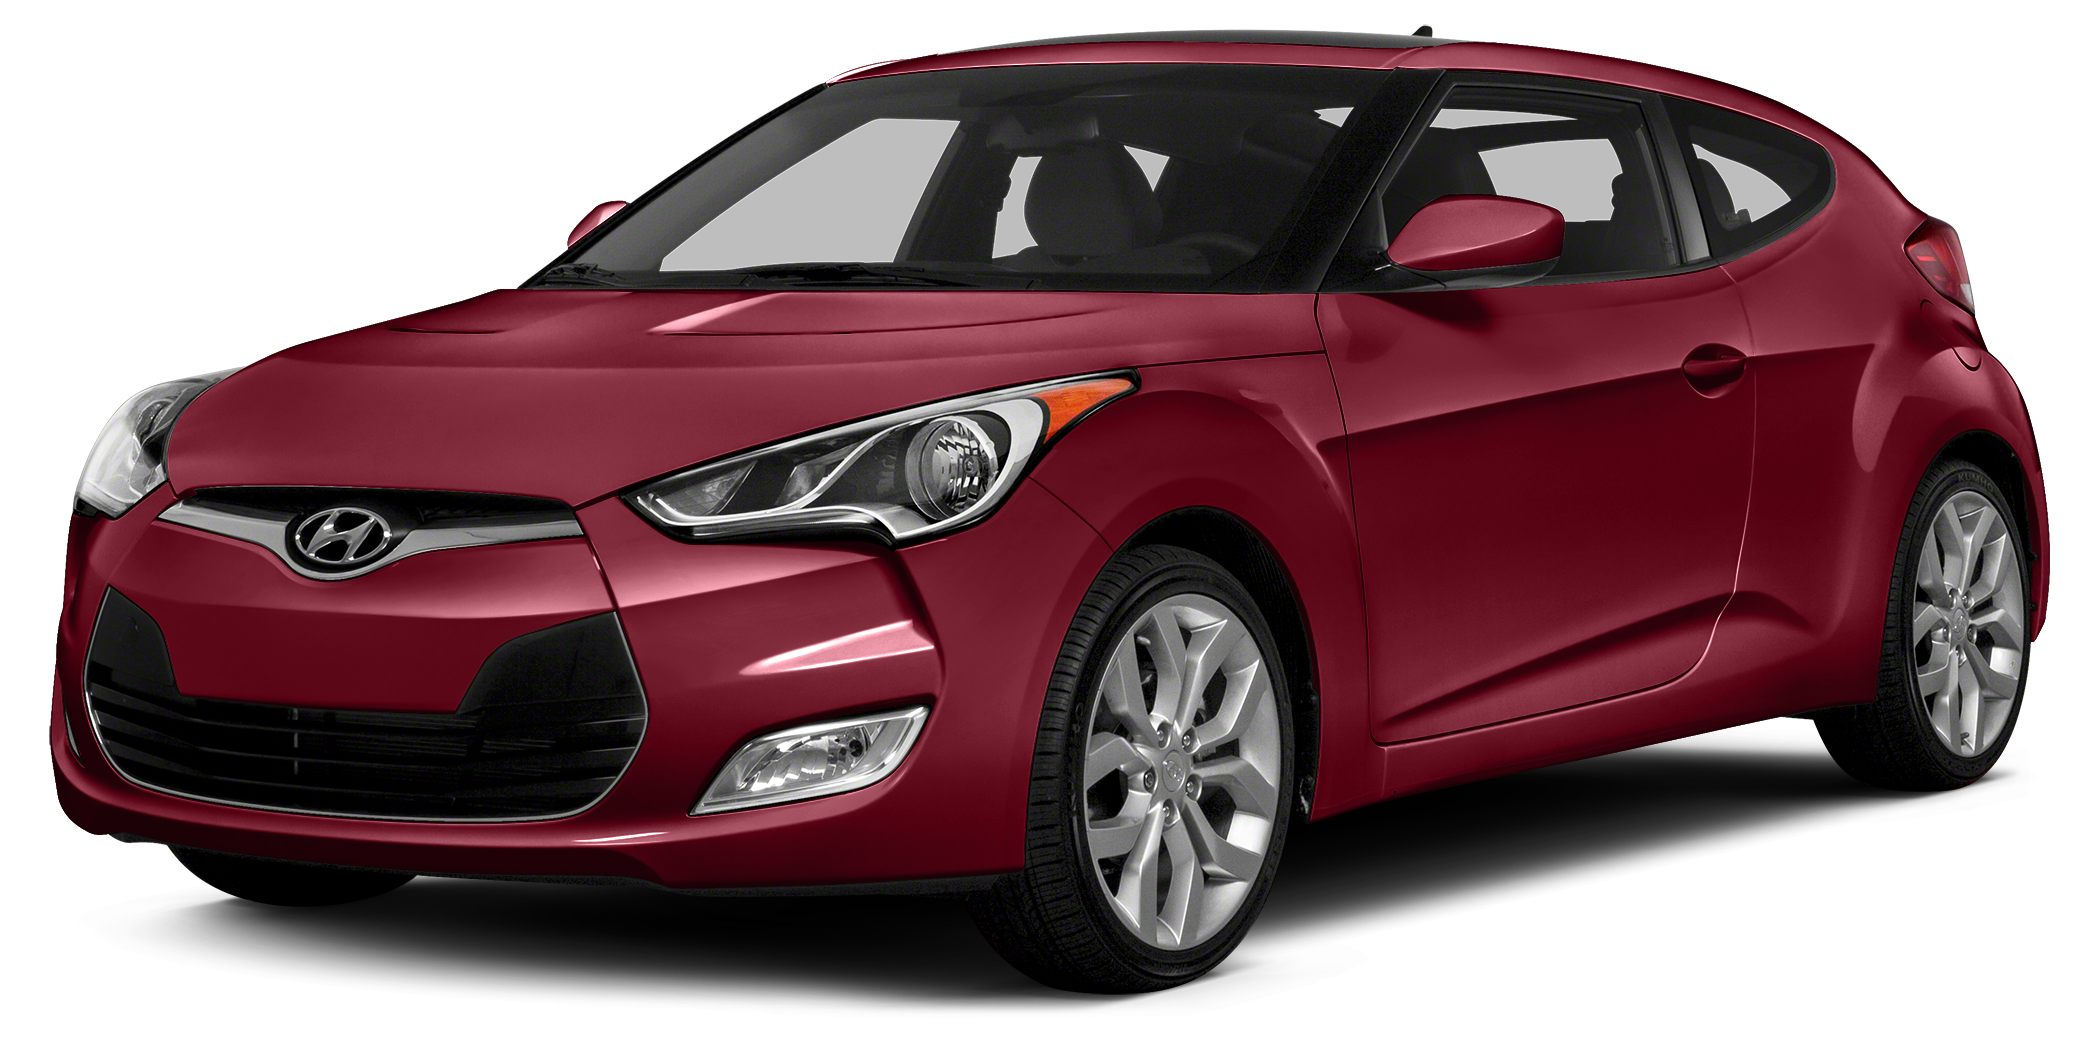 2013 Hyundai Veloster Base wGray Hyundai Certified youll get NAVIGATION PANORAMIC skyroof - 8